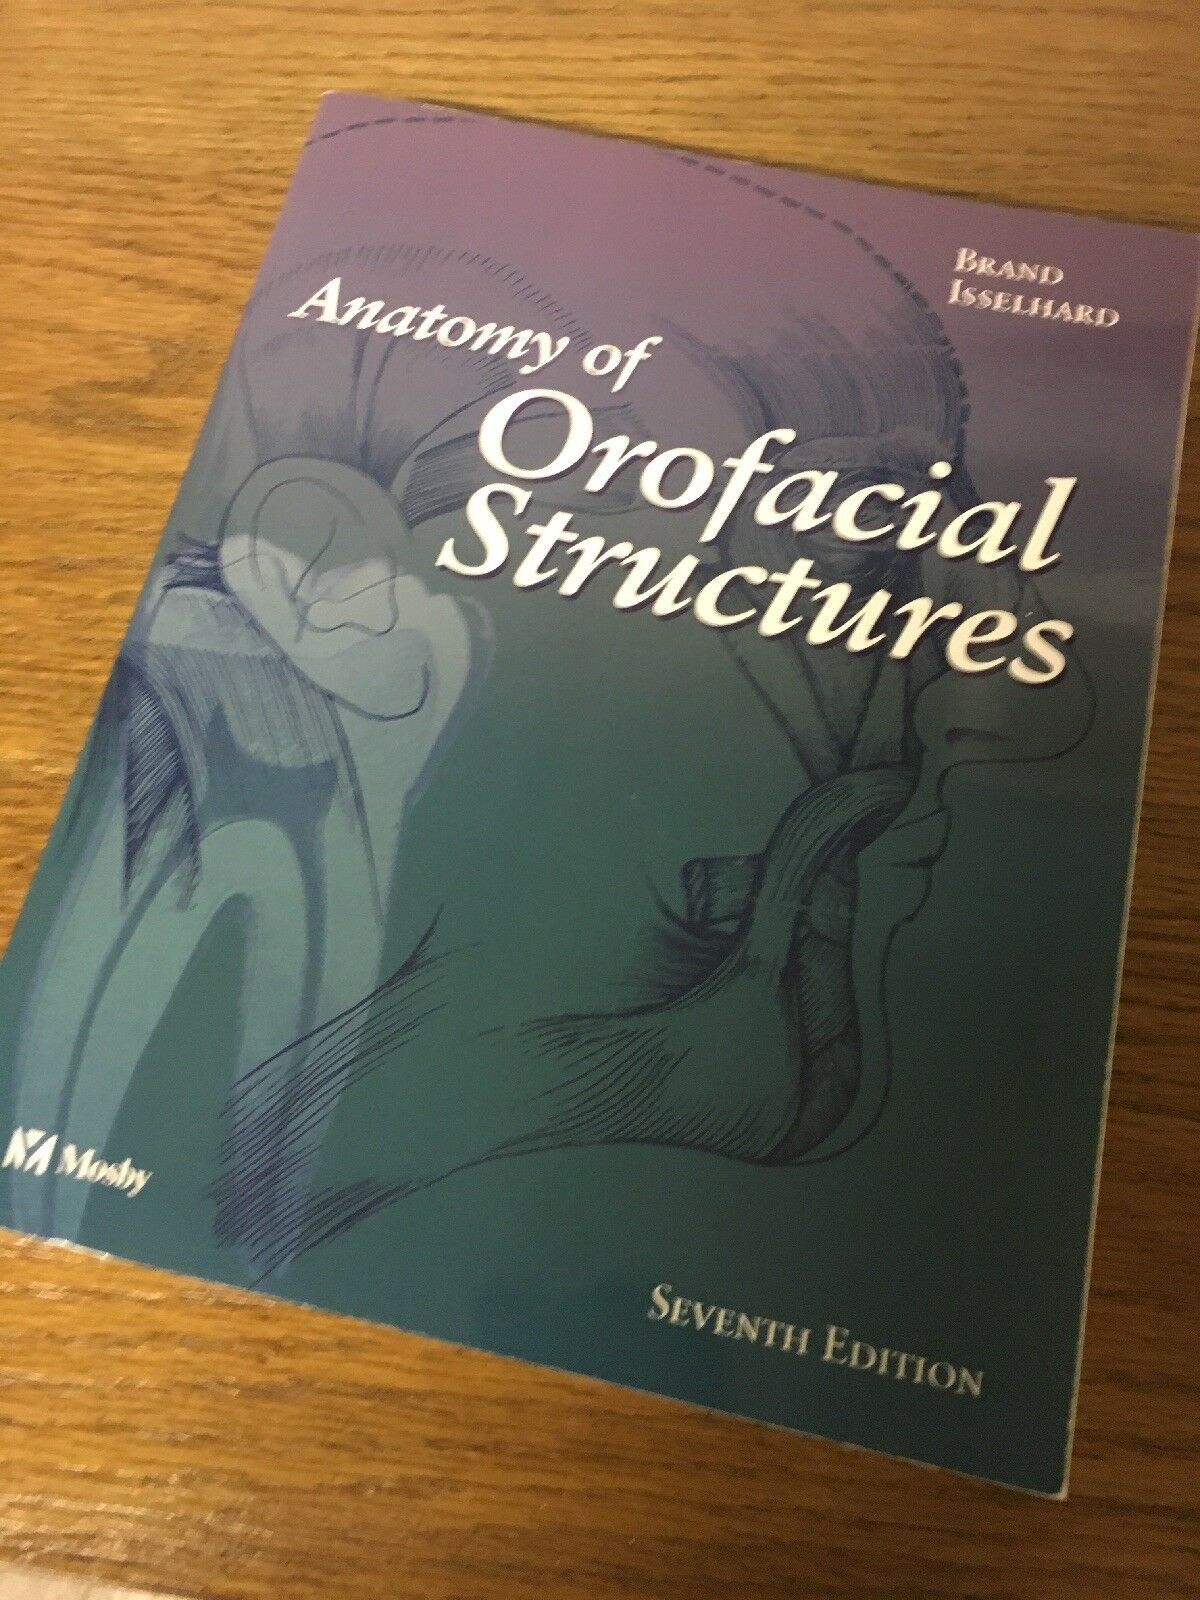 Anatomy Of Orofacial Structures By Donald E Isselhard And Richard W